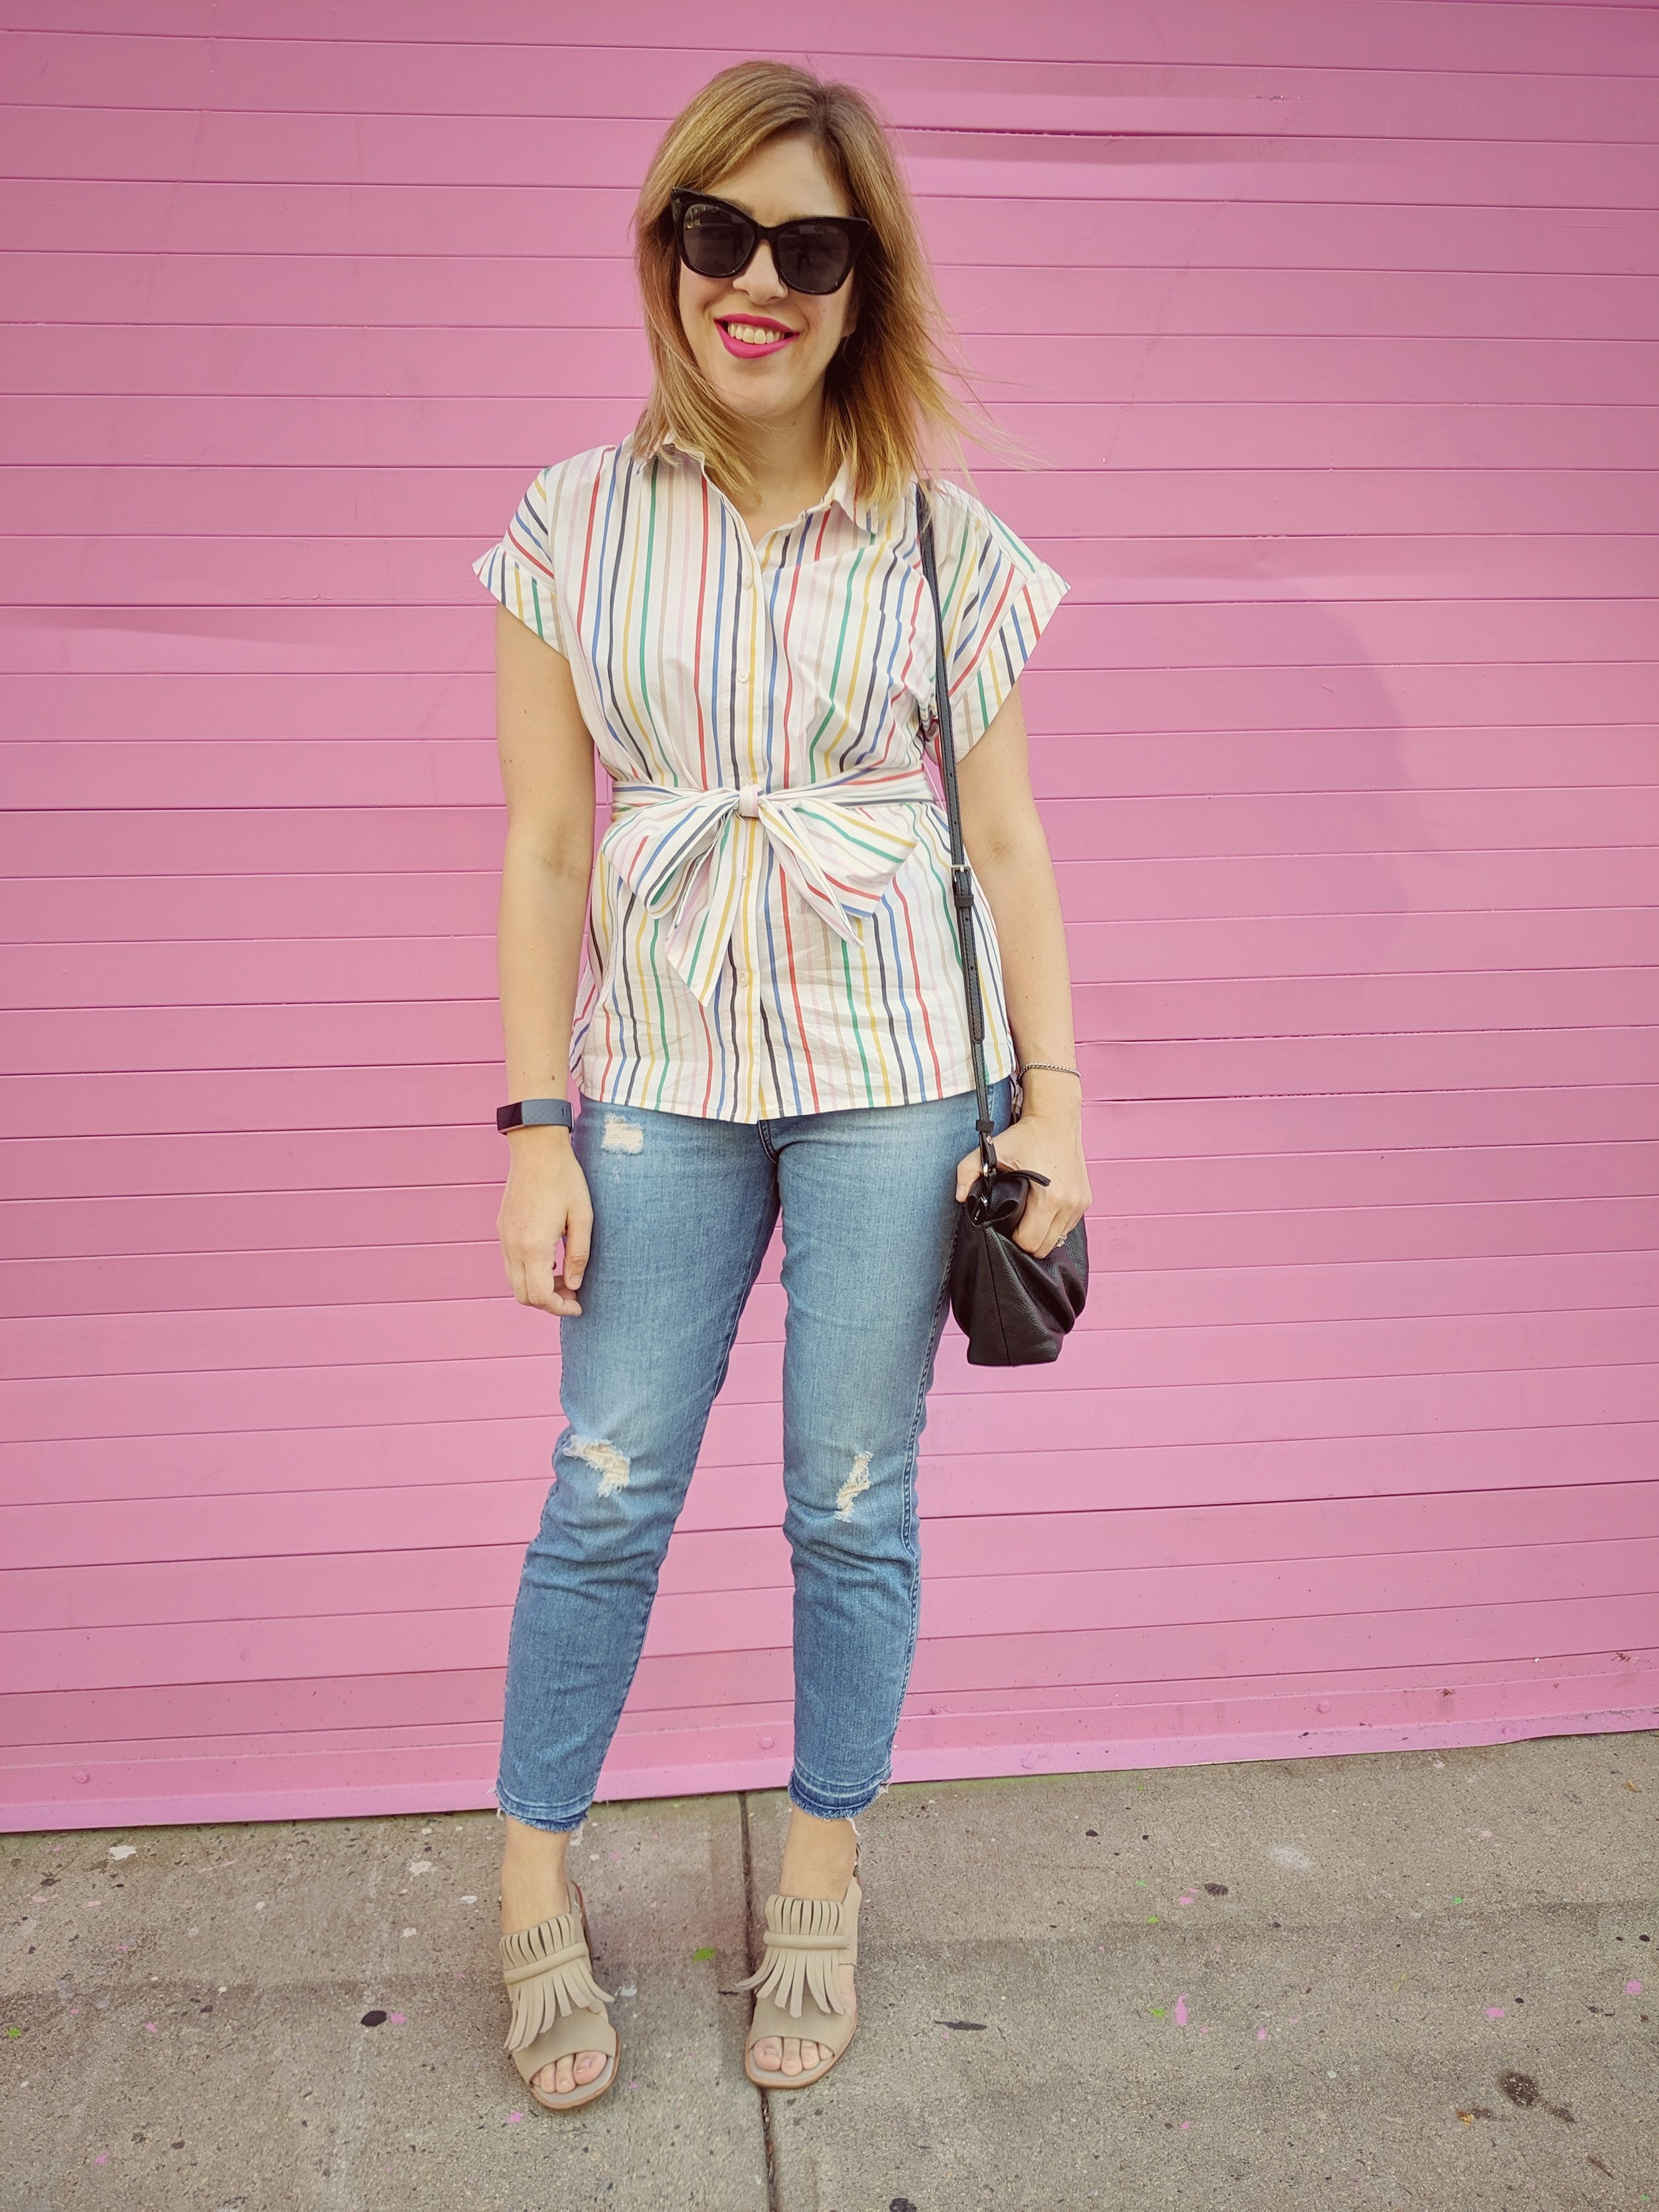 jcrew striped shirt and denim5.jpeg